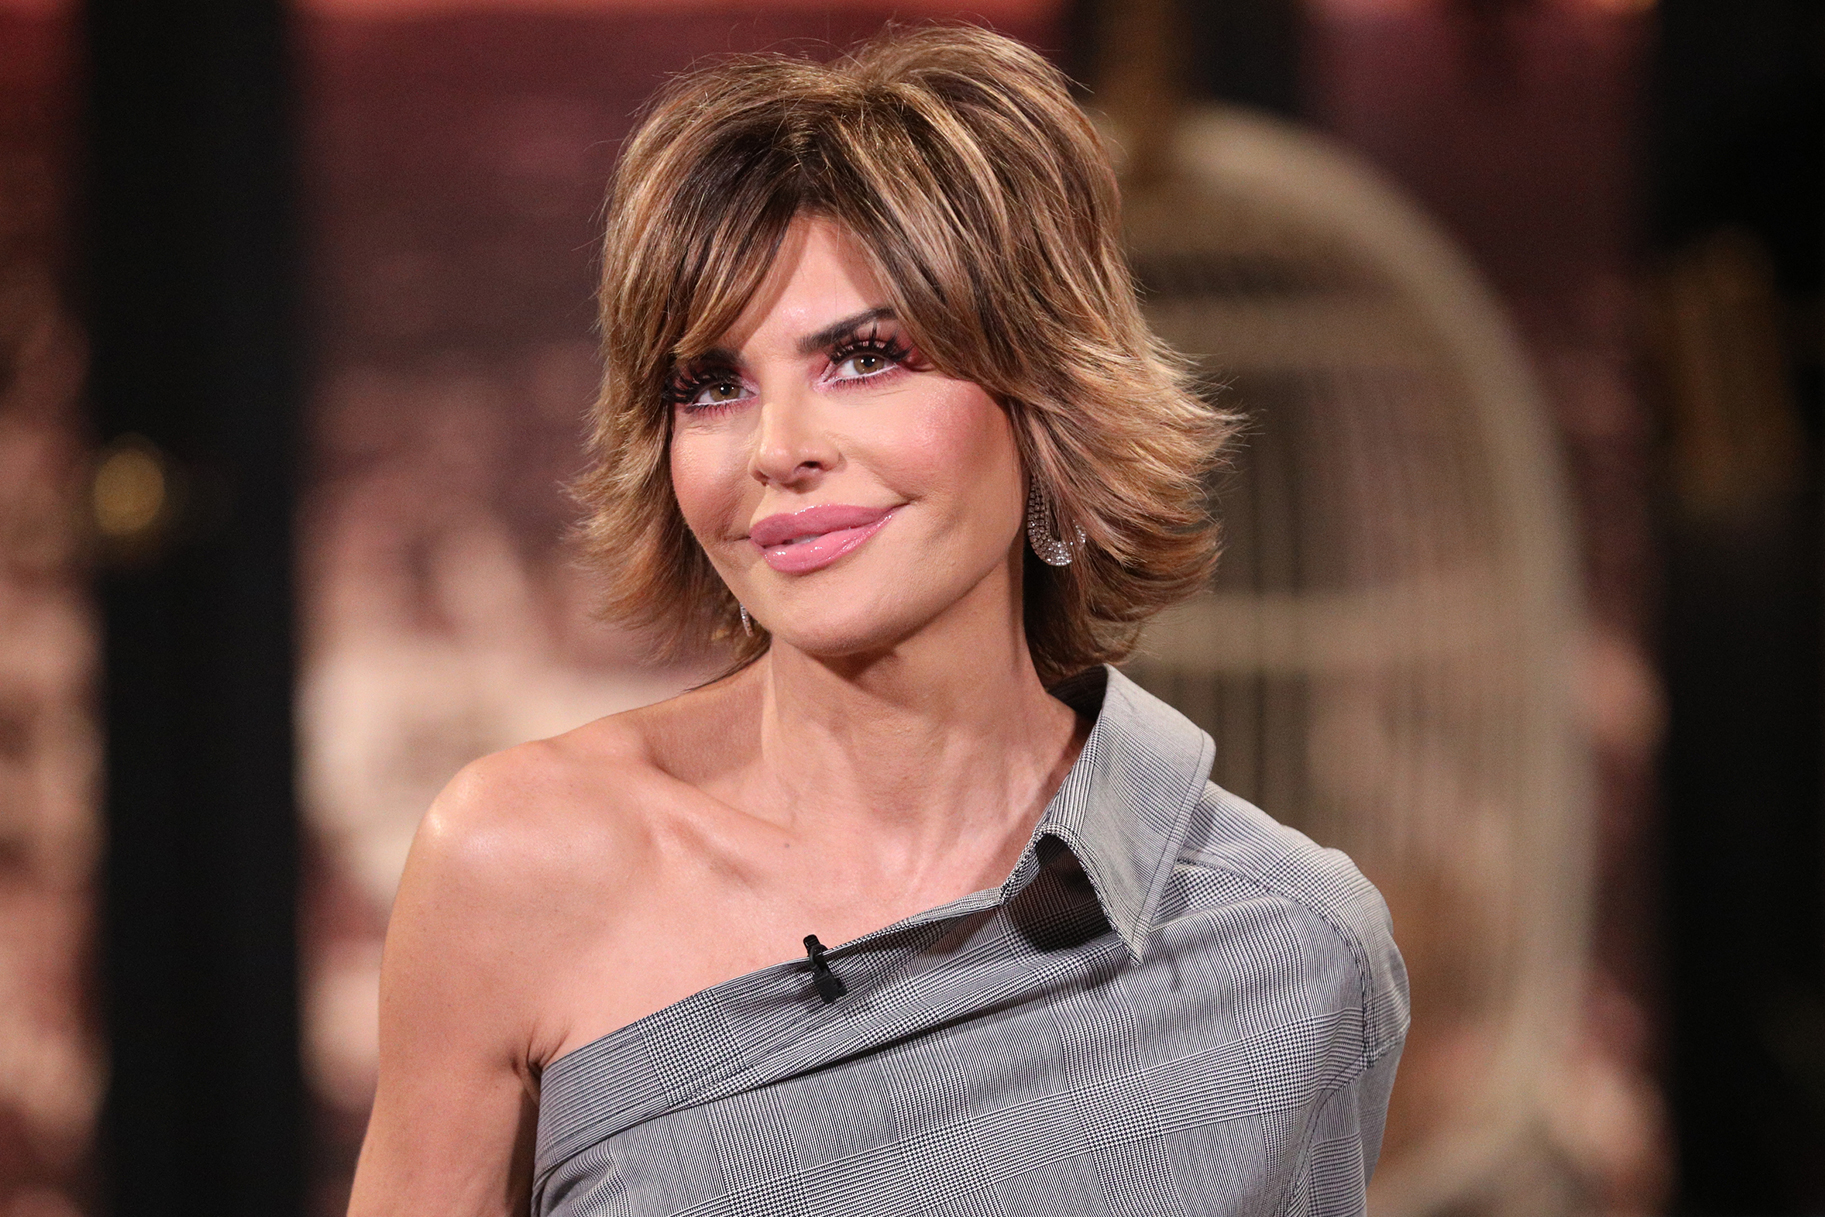 Lisa Rinna Short Hair